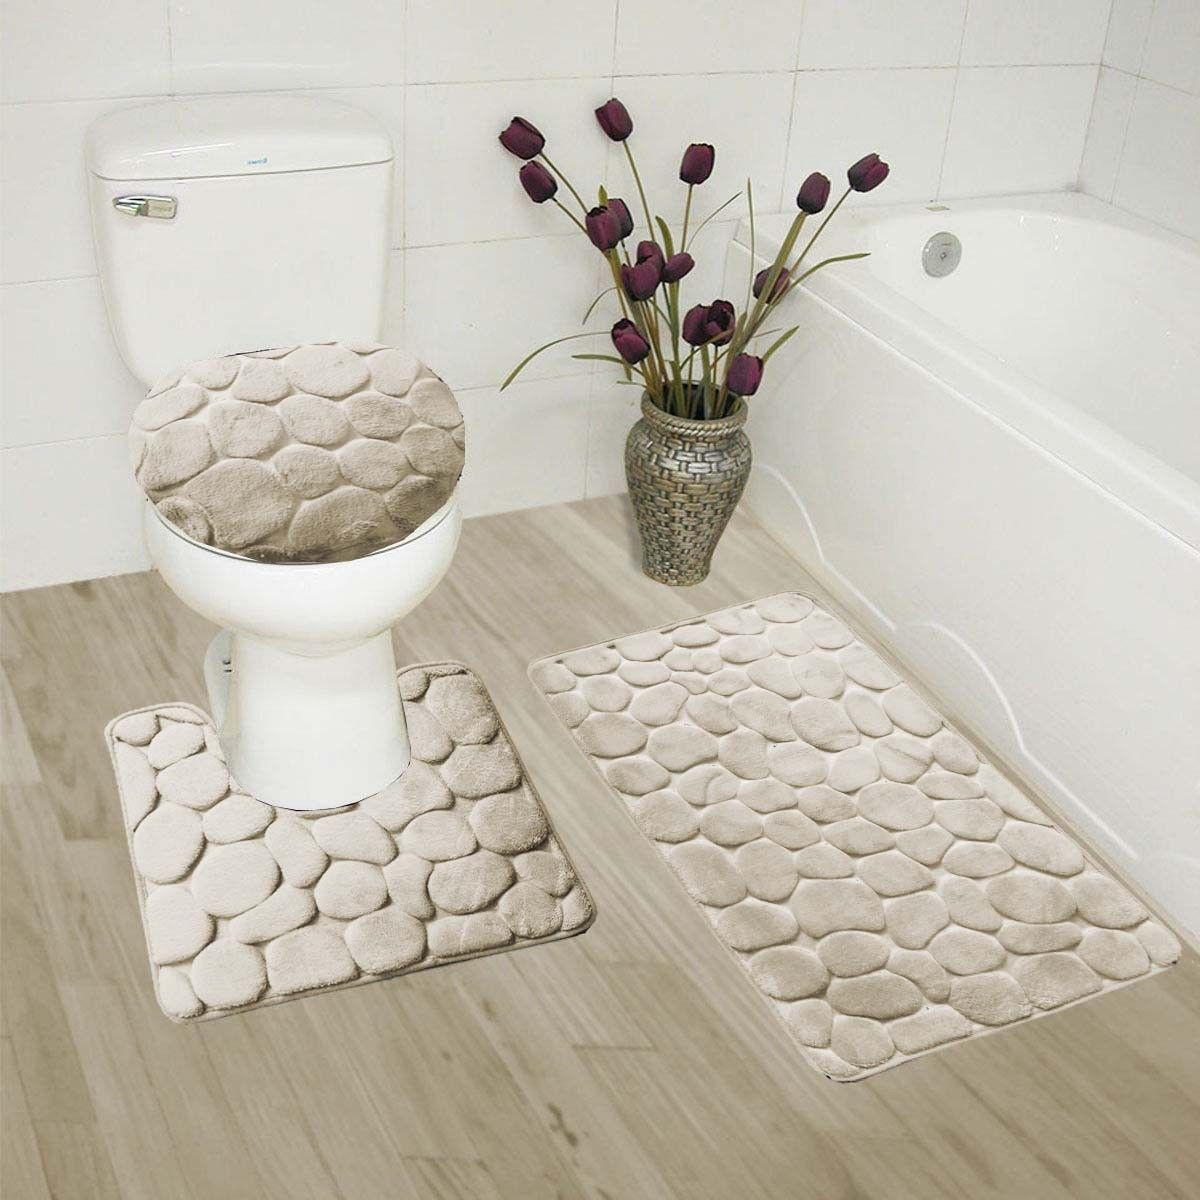 "BEIGE 3-Piece Rock Memory Foam Bathroom Mat Set, Flannel Embossed Rug 19""x 30"", Contour Mat 19""x19"", and Toilet Lid Cover 19""x19"" with Non-Skid Rubber Back"